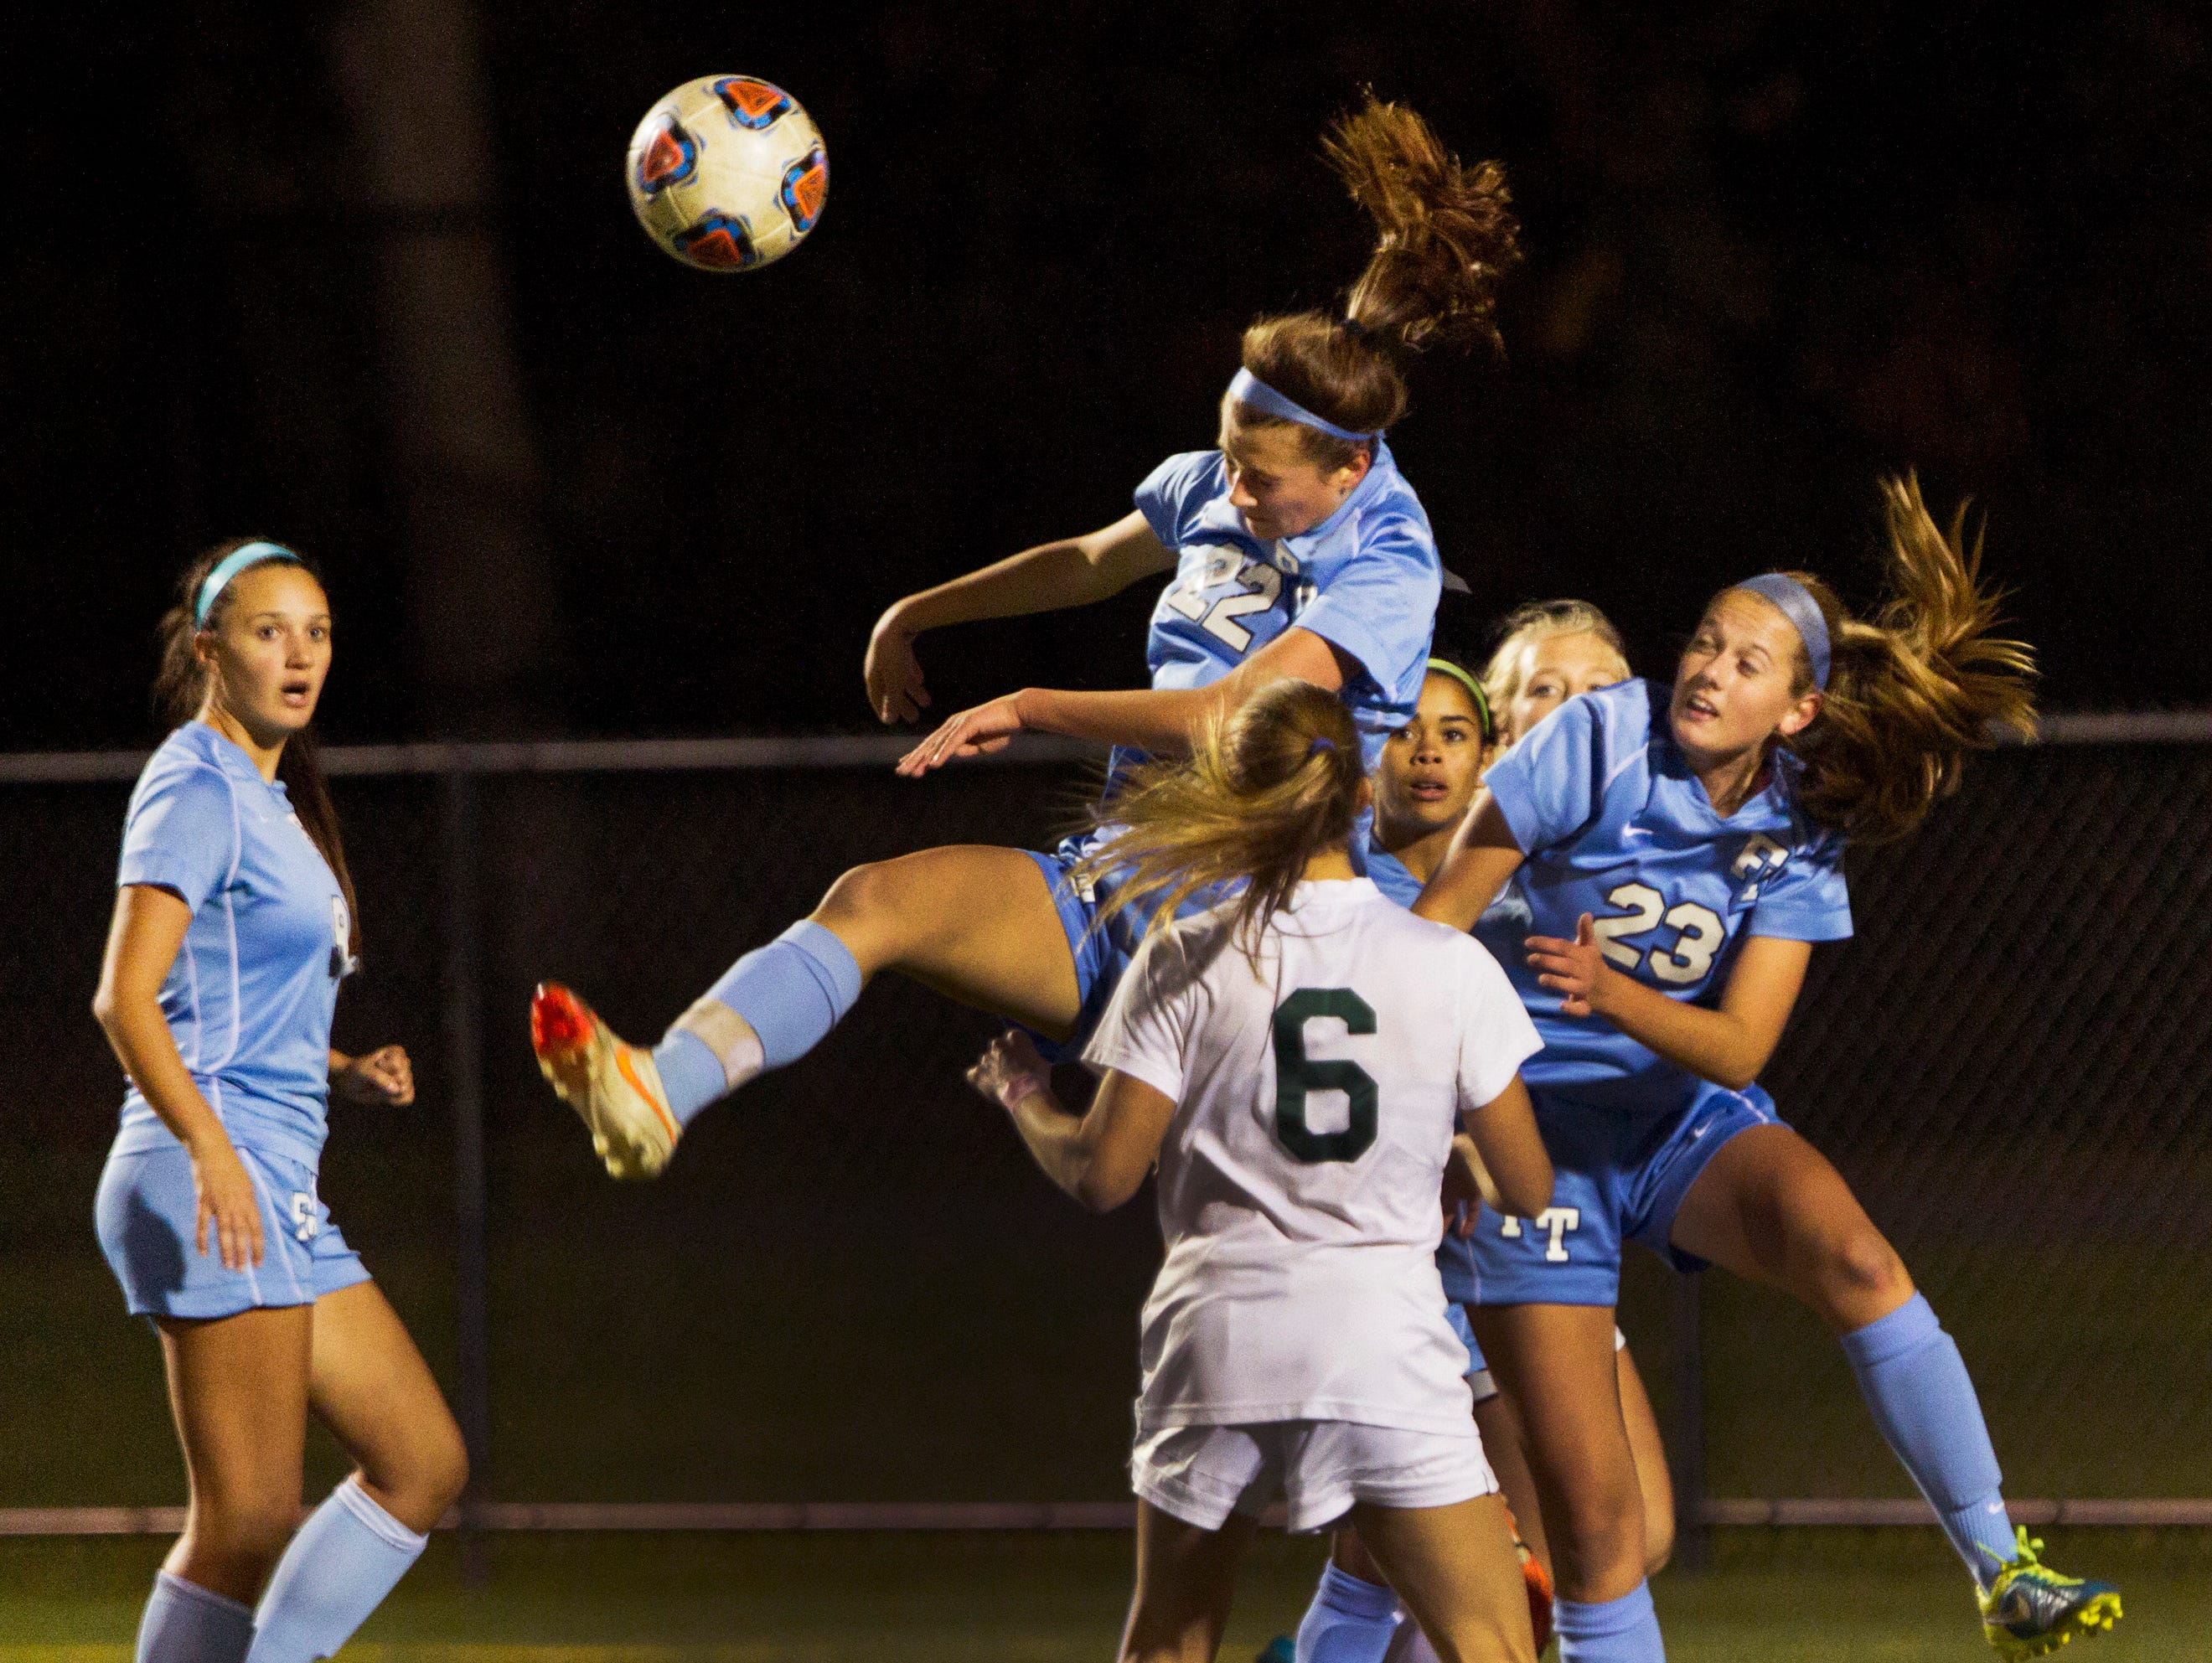 freehold girls Get the latest freehold township (nj) high school girls soccer news, rankings, schedules, stats, scores, results, athletes info, and more at pennlivecom.